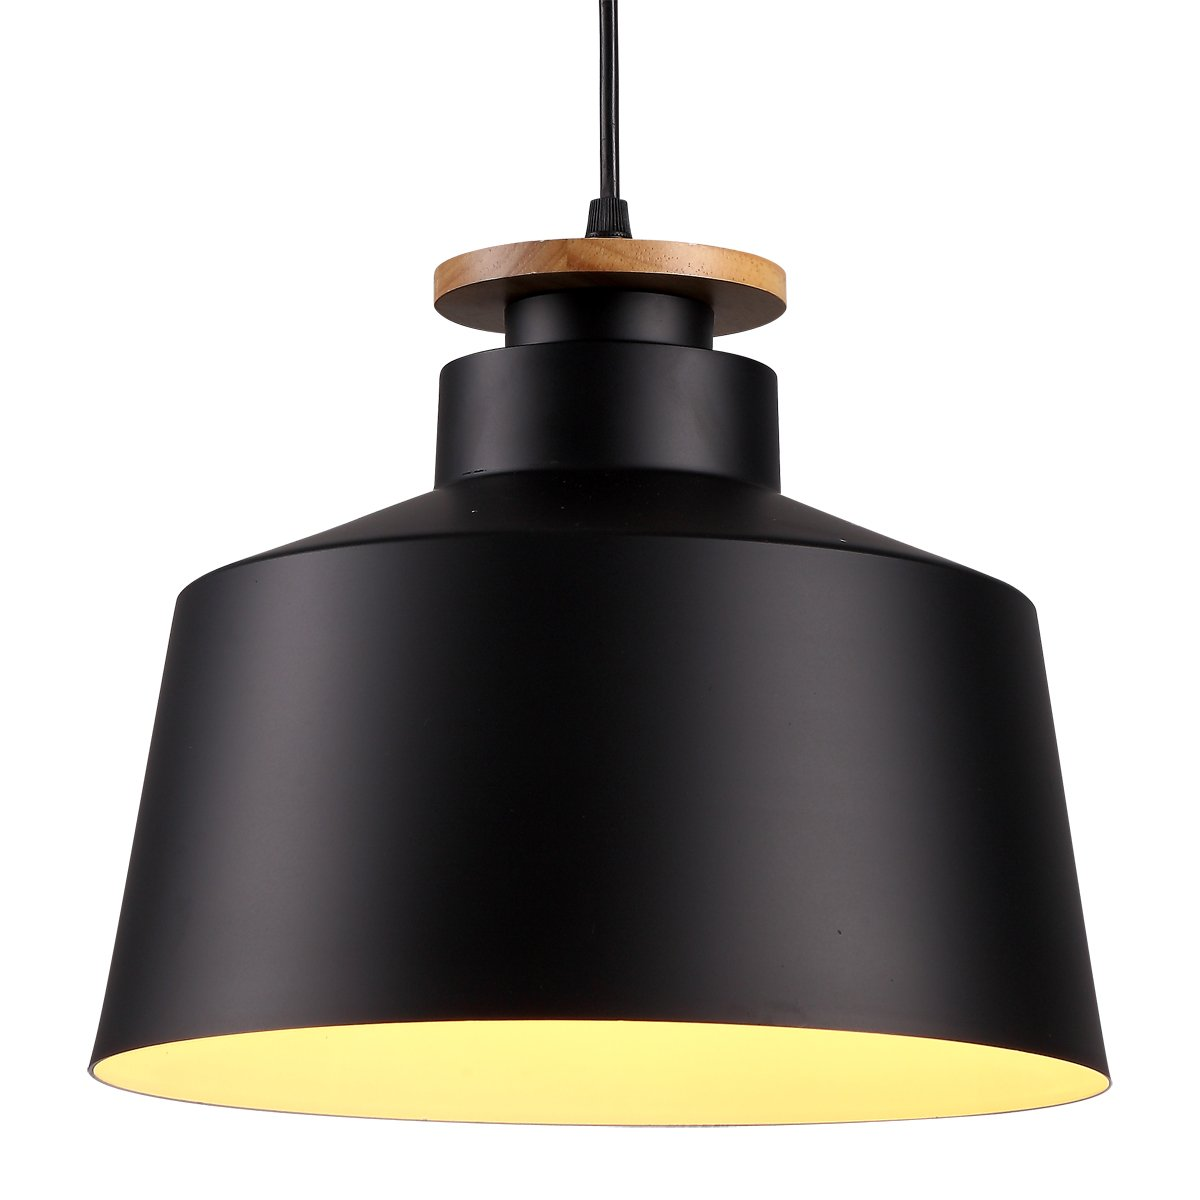 Homiforce vintage style 1 light large black dome pendant light with metal shade in matte black finish modern industrial edison style hangingclose to